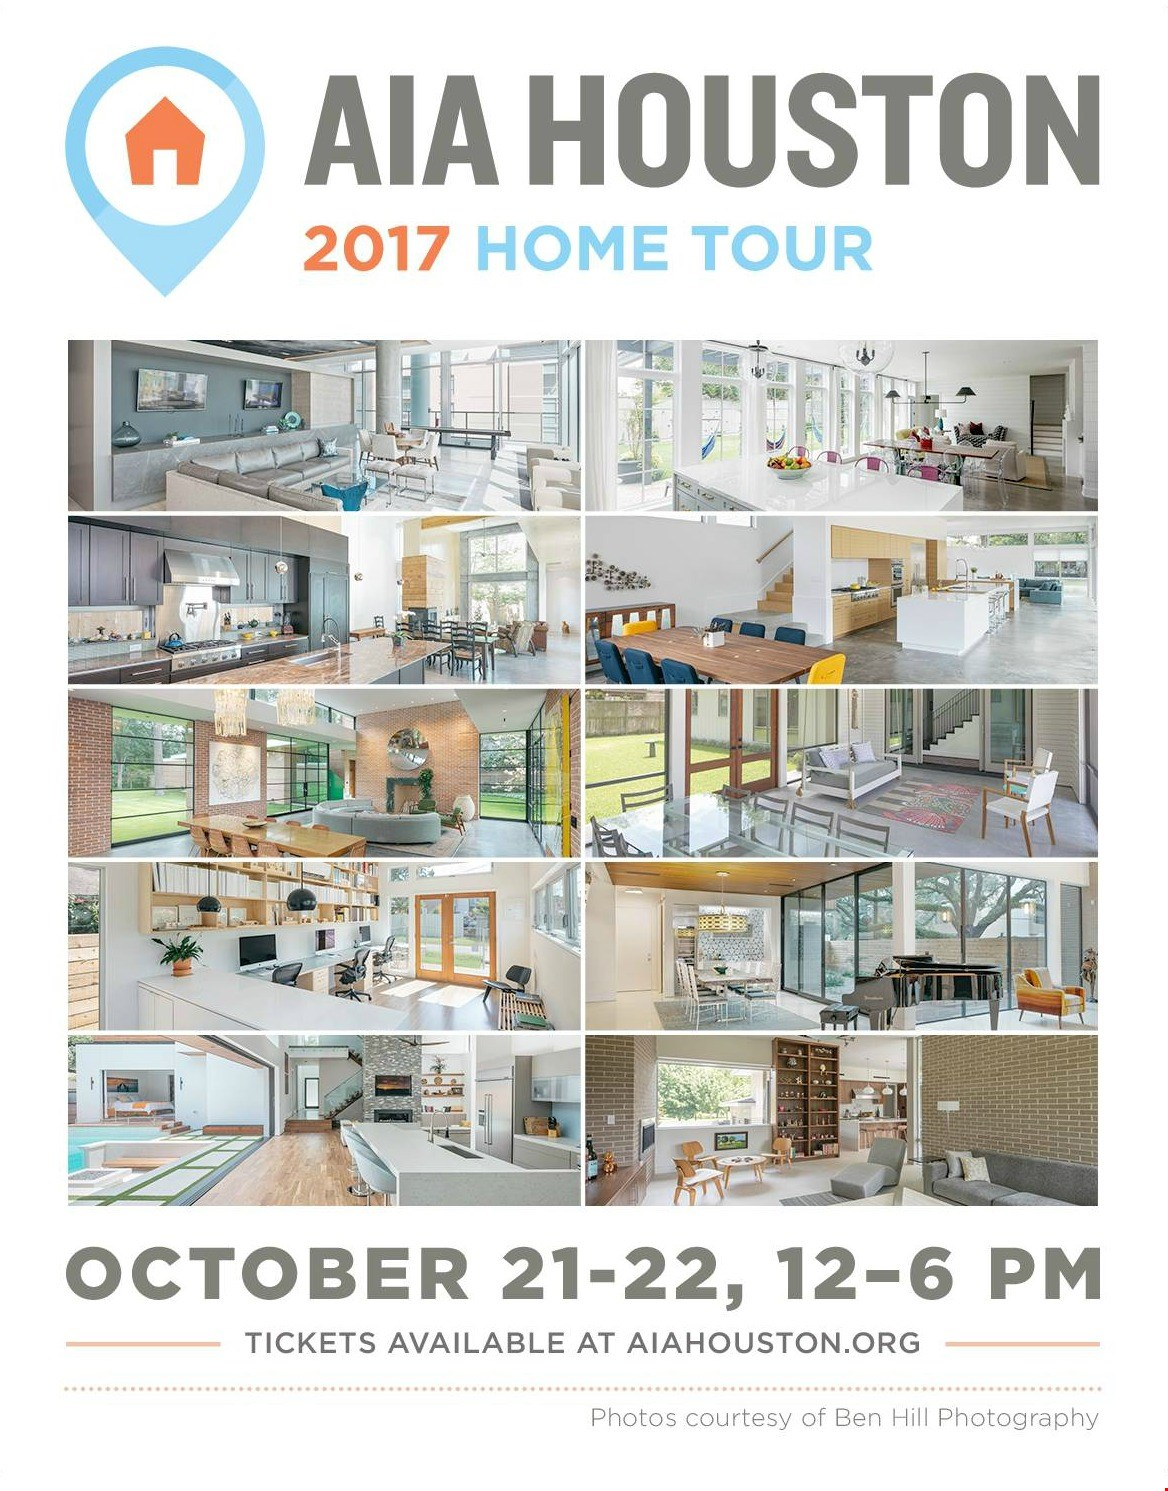 Aia Houston 2017 Home Tour Represents Every Size From High Rise To Tiny House And Highlights